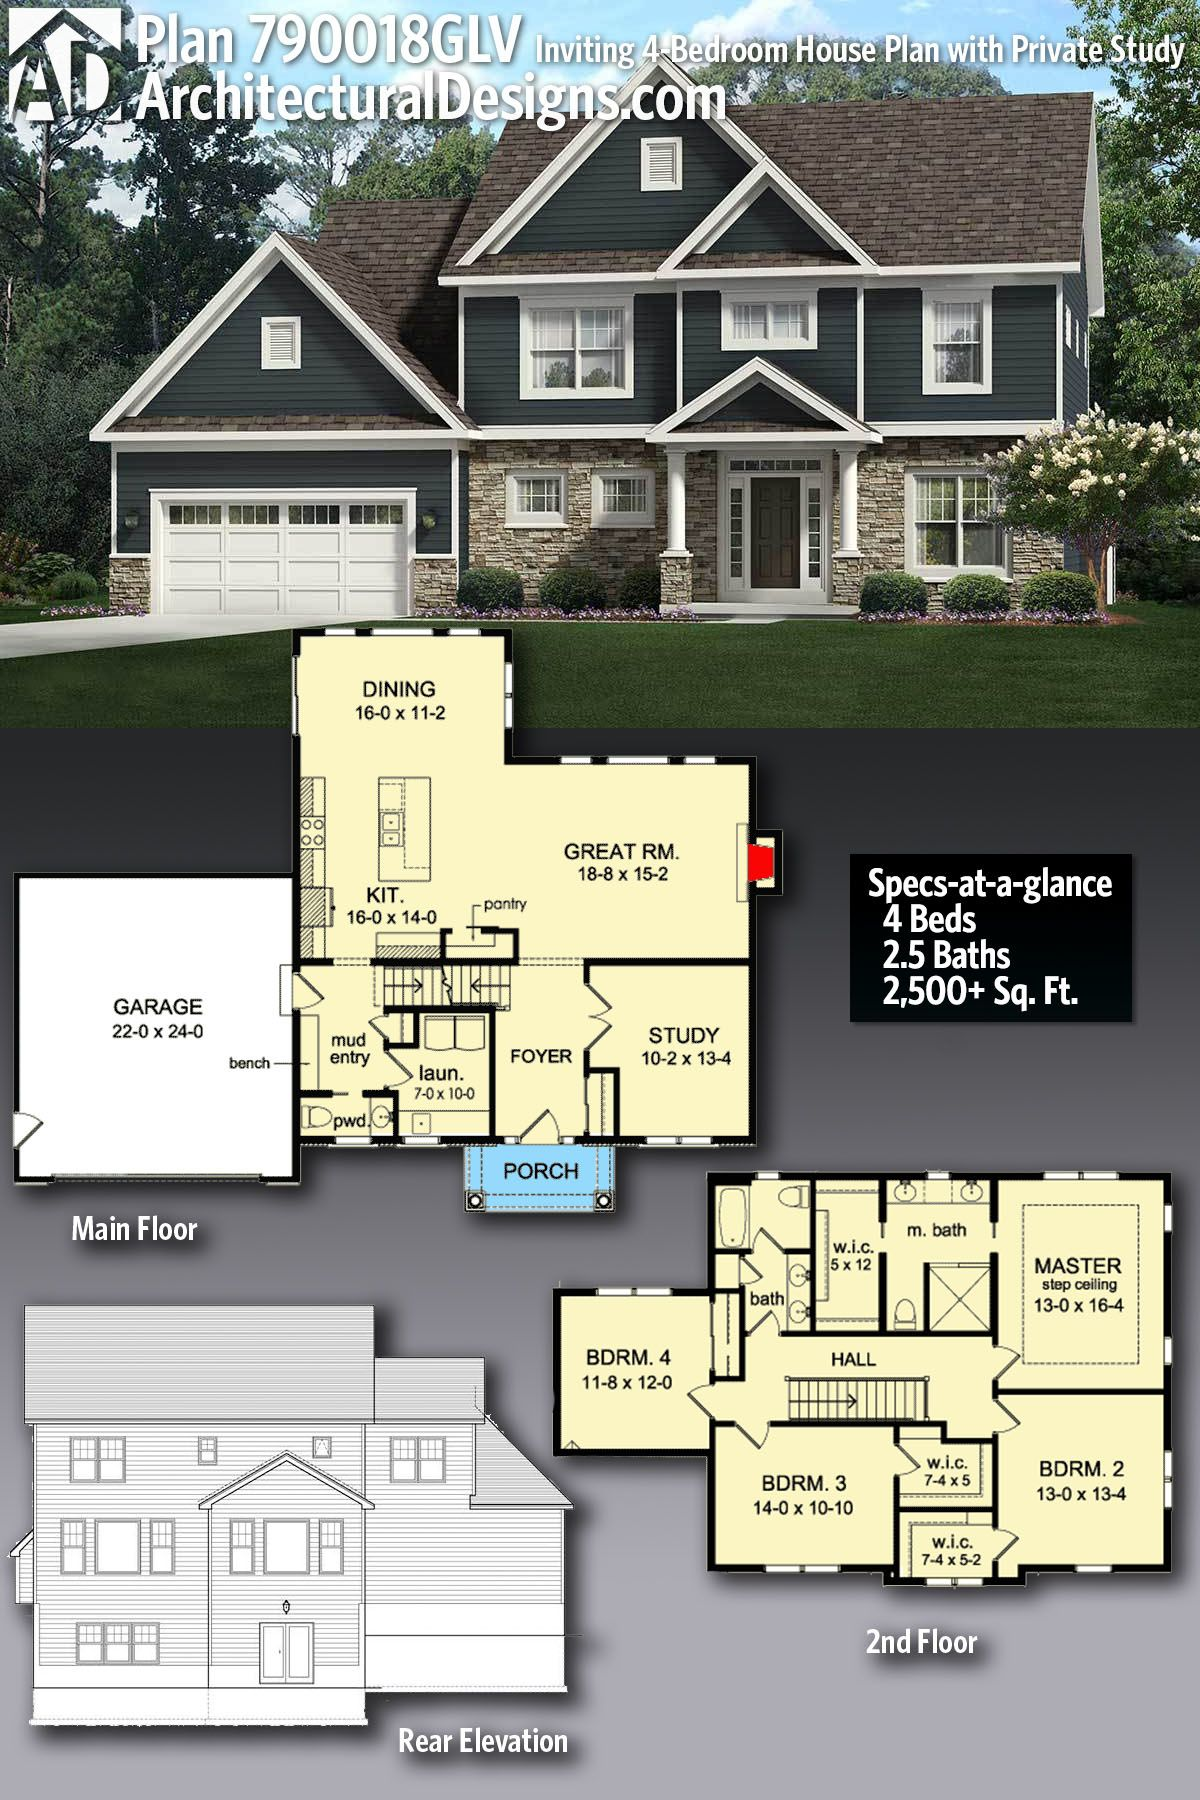 Plan GLV Inviting 4 Bedroom House Plan with Private Study